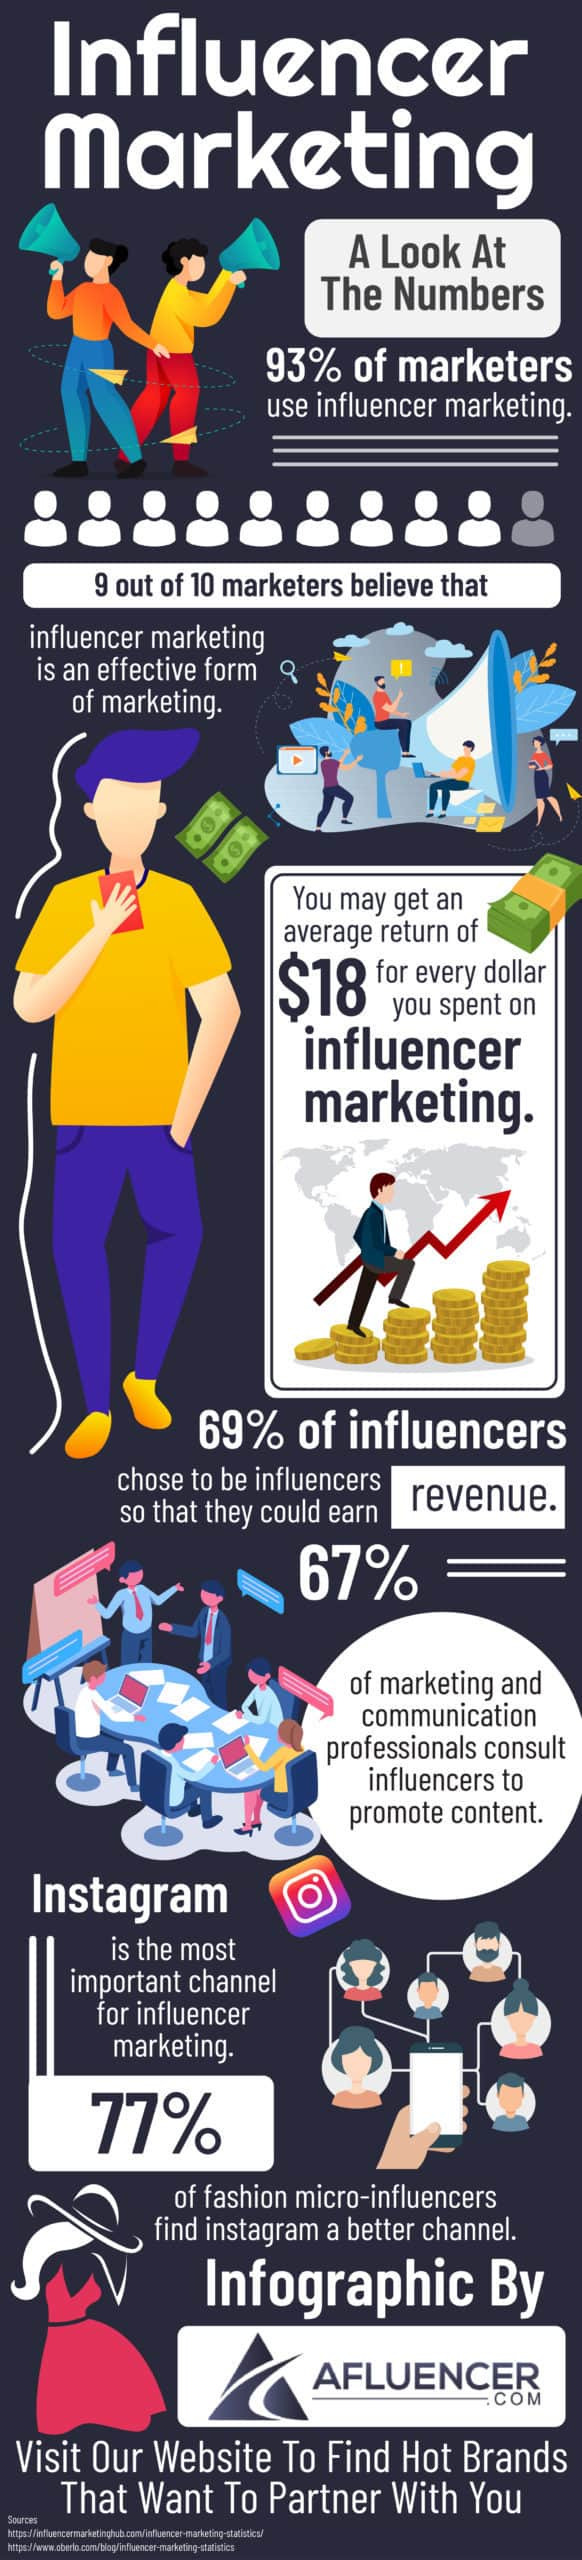 Influencer Marketing: A Look At The Numbers